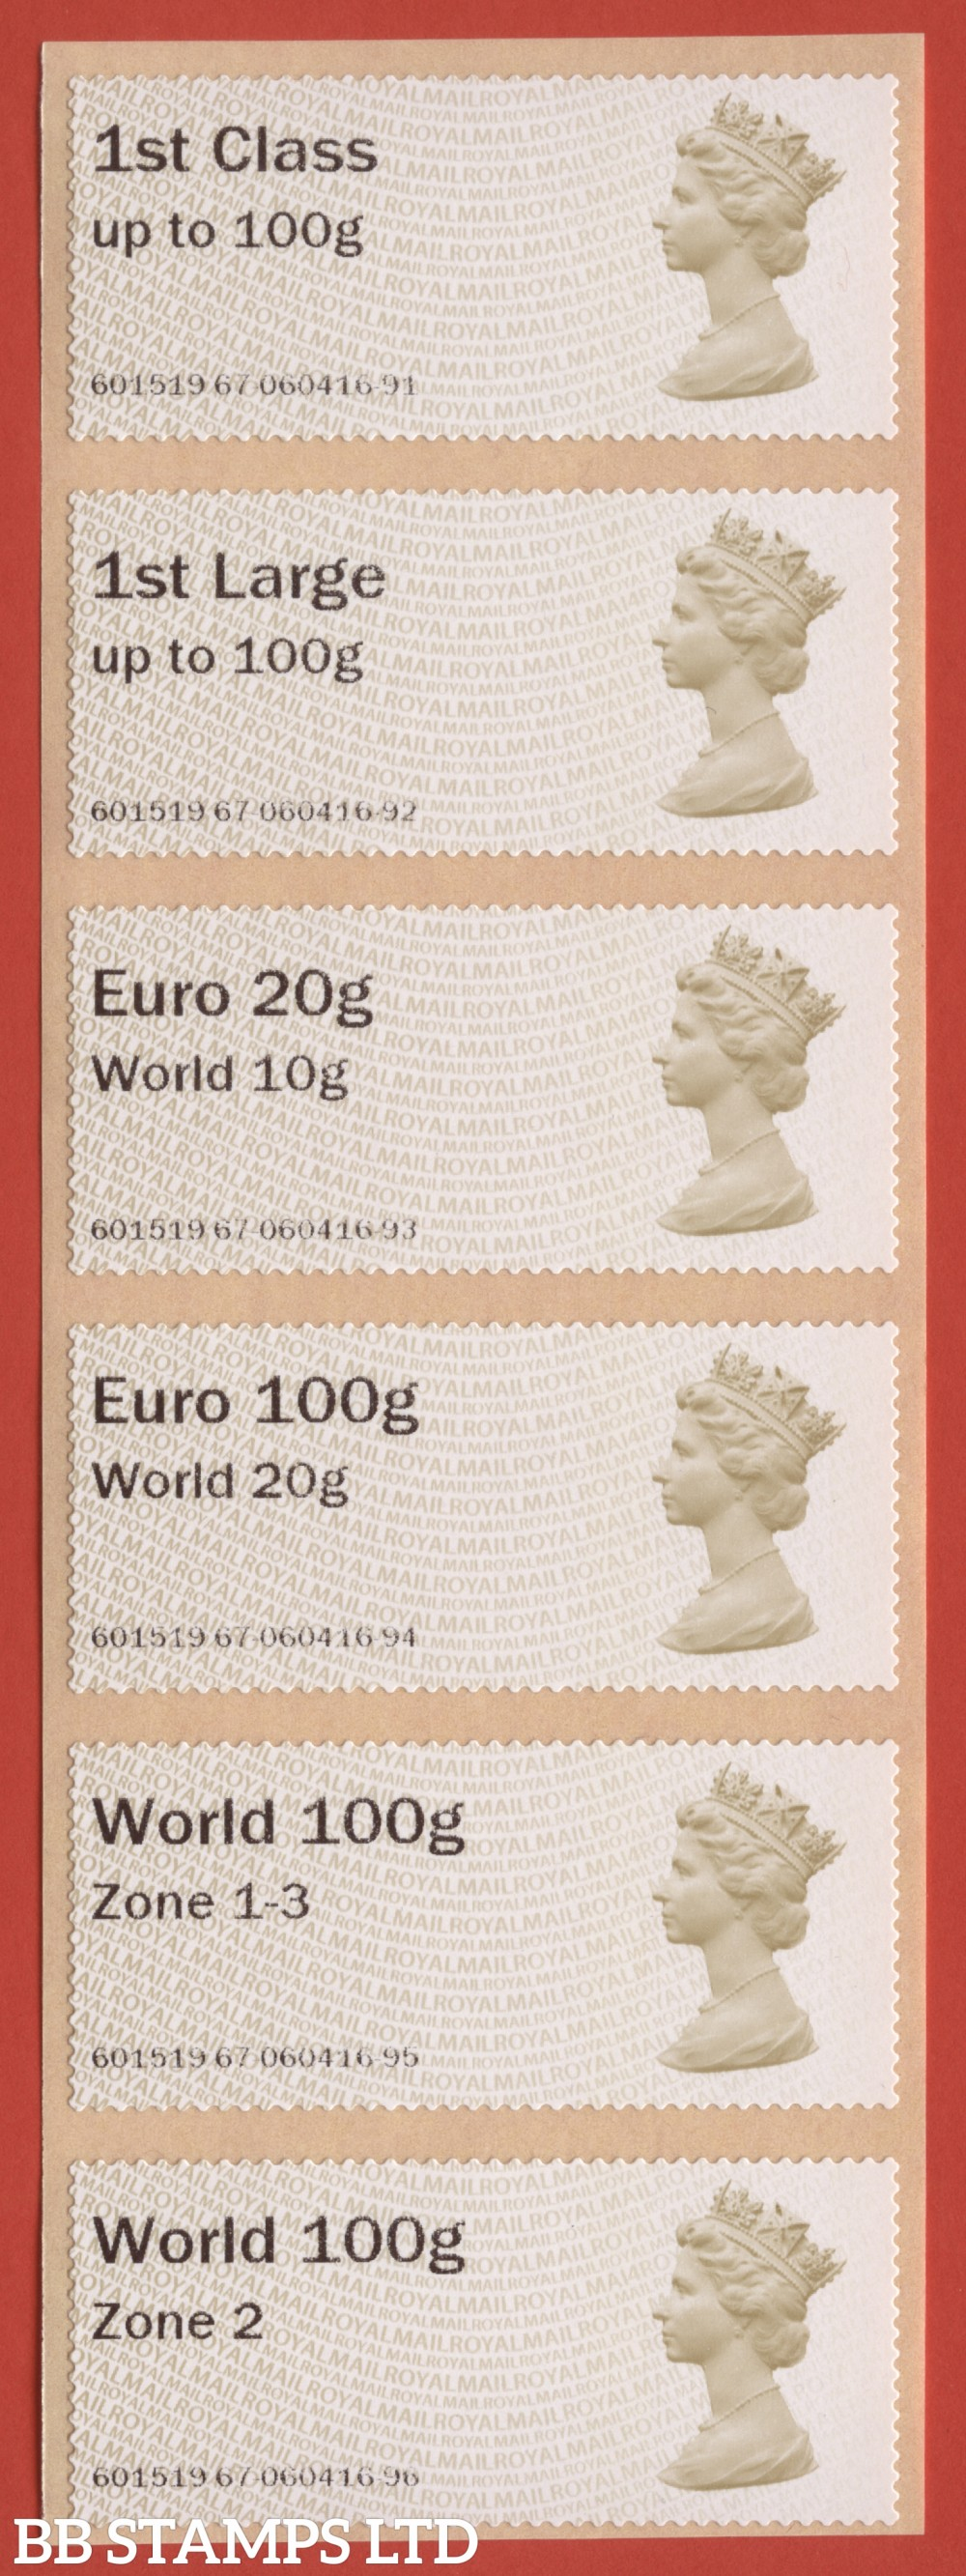 Machin (TIIA) set of 6 with new overseas tariff stamps as issued on 01 September 2020: 1st, 1stL, Euro 20g World 10g – and new tariff Euro 100g World 20g/World 100g Zone 1-3/World Zone 2 stamps: MA14 (BK29 P17)